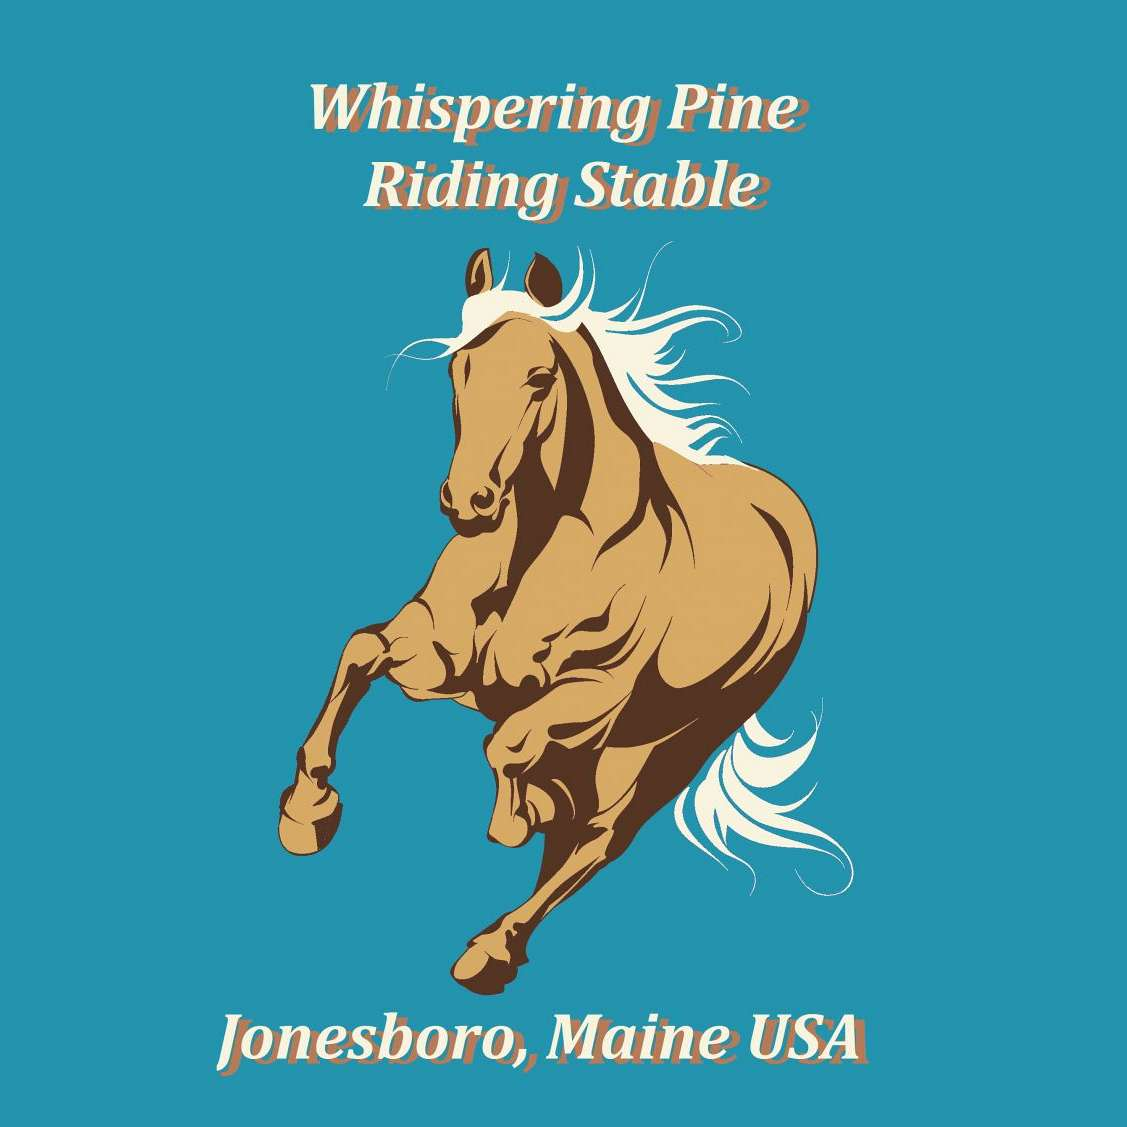 Whispering Pine Stable